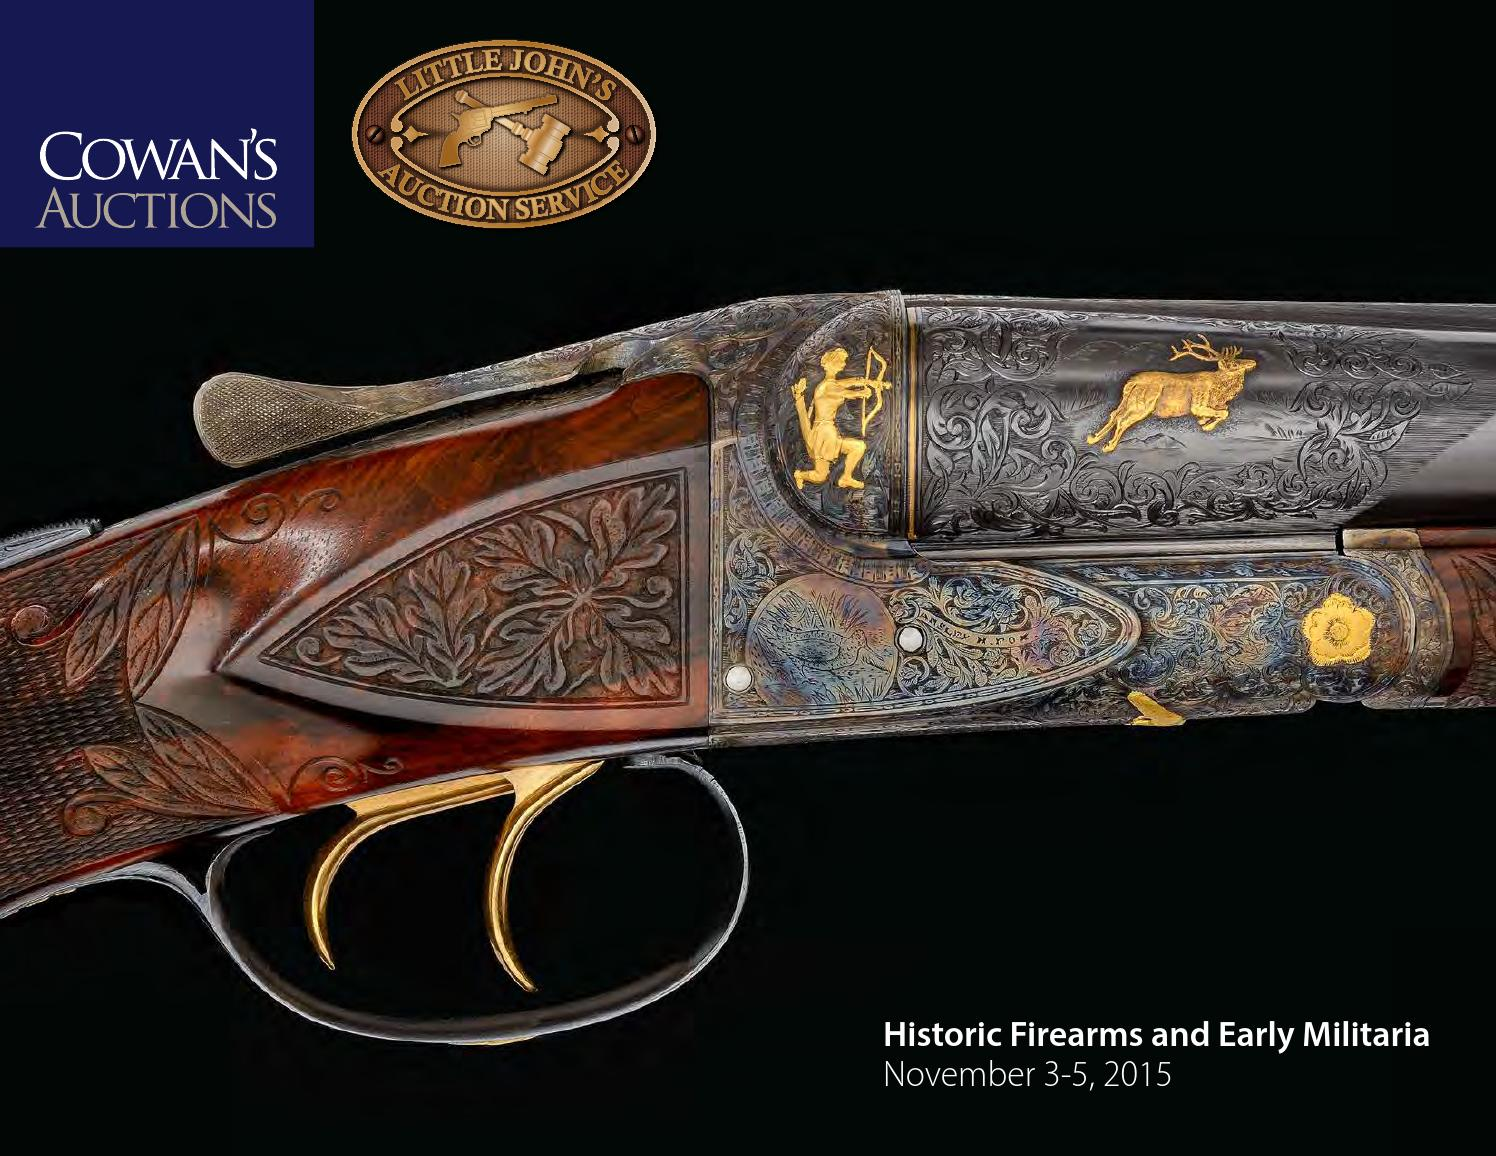 d8061012ac Historic Firearms and Early Militaria by Cowan s Auctions - issuu